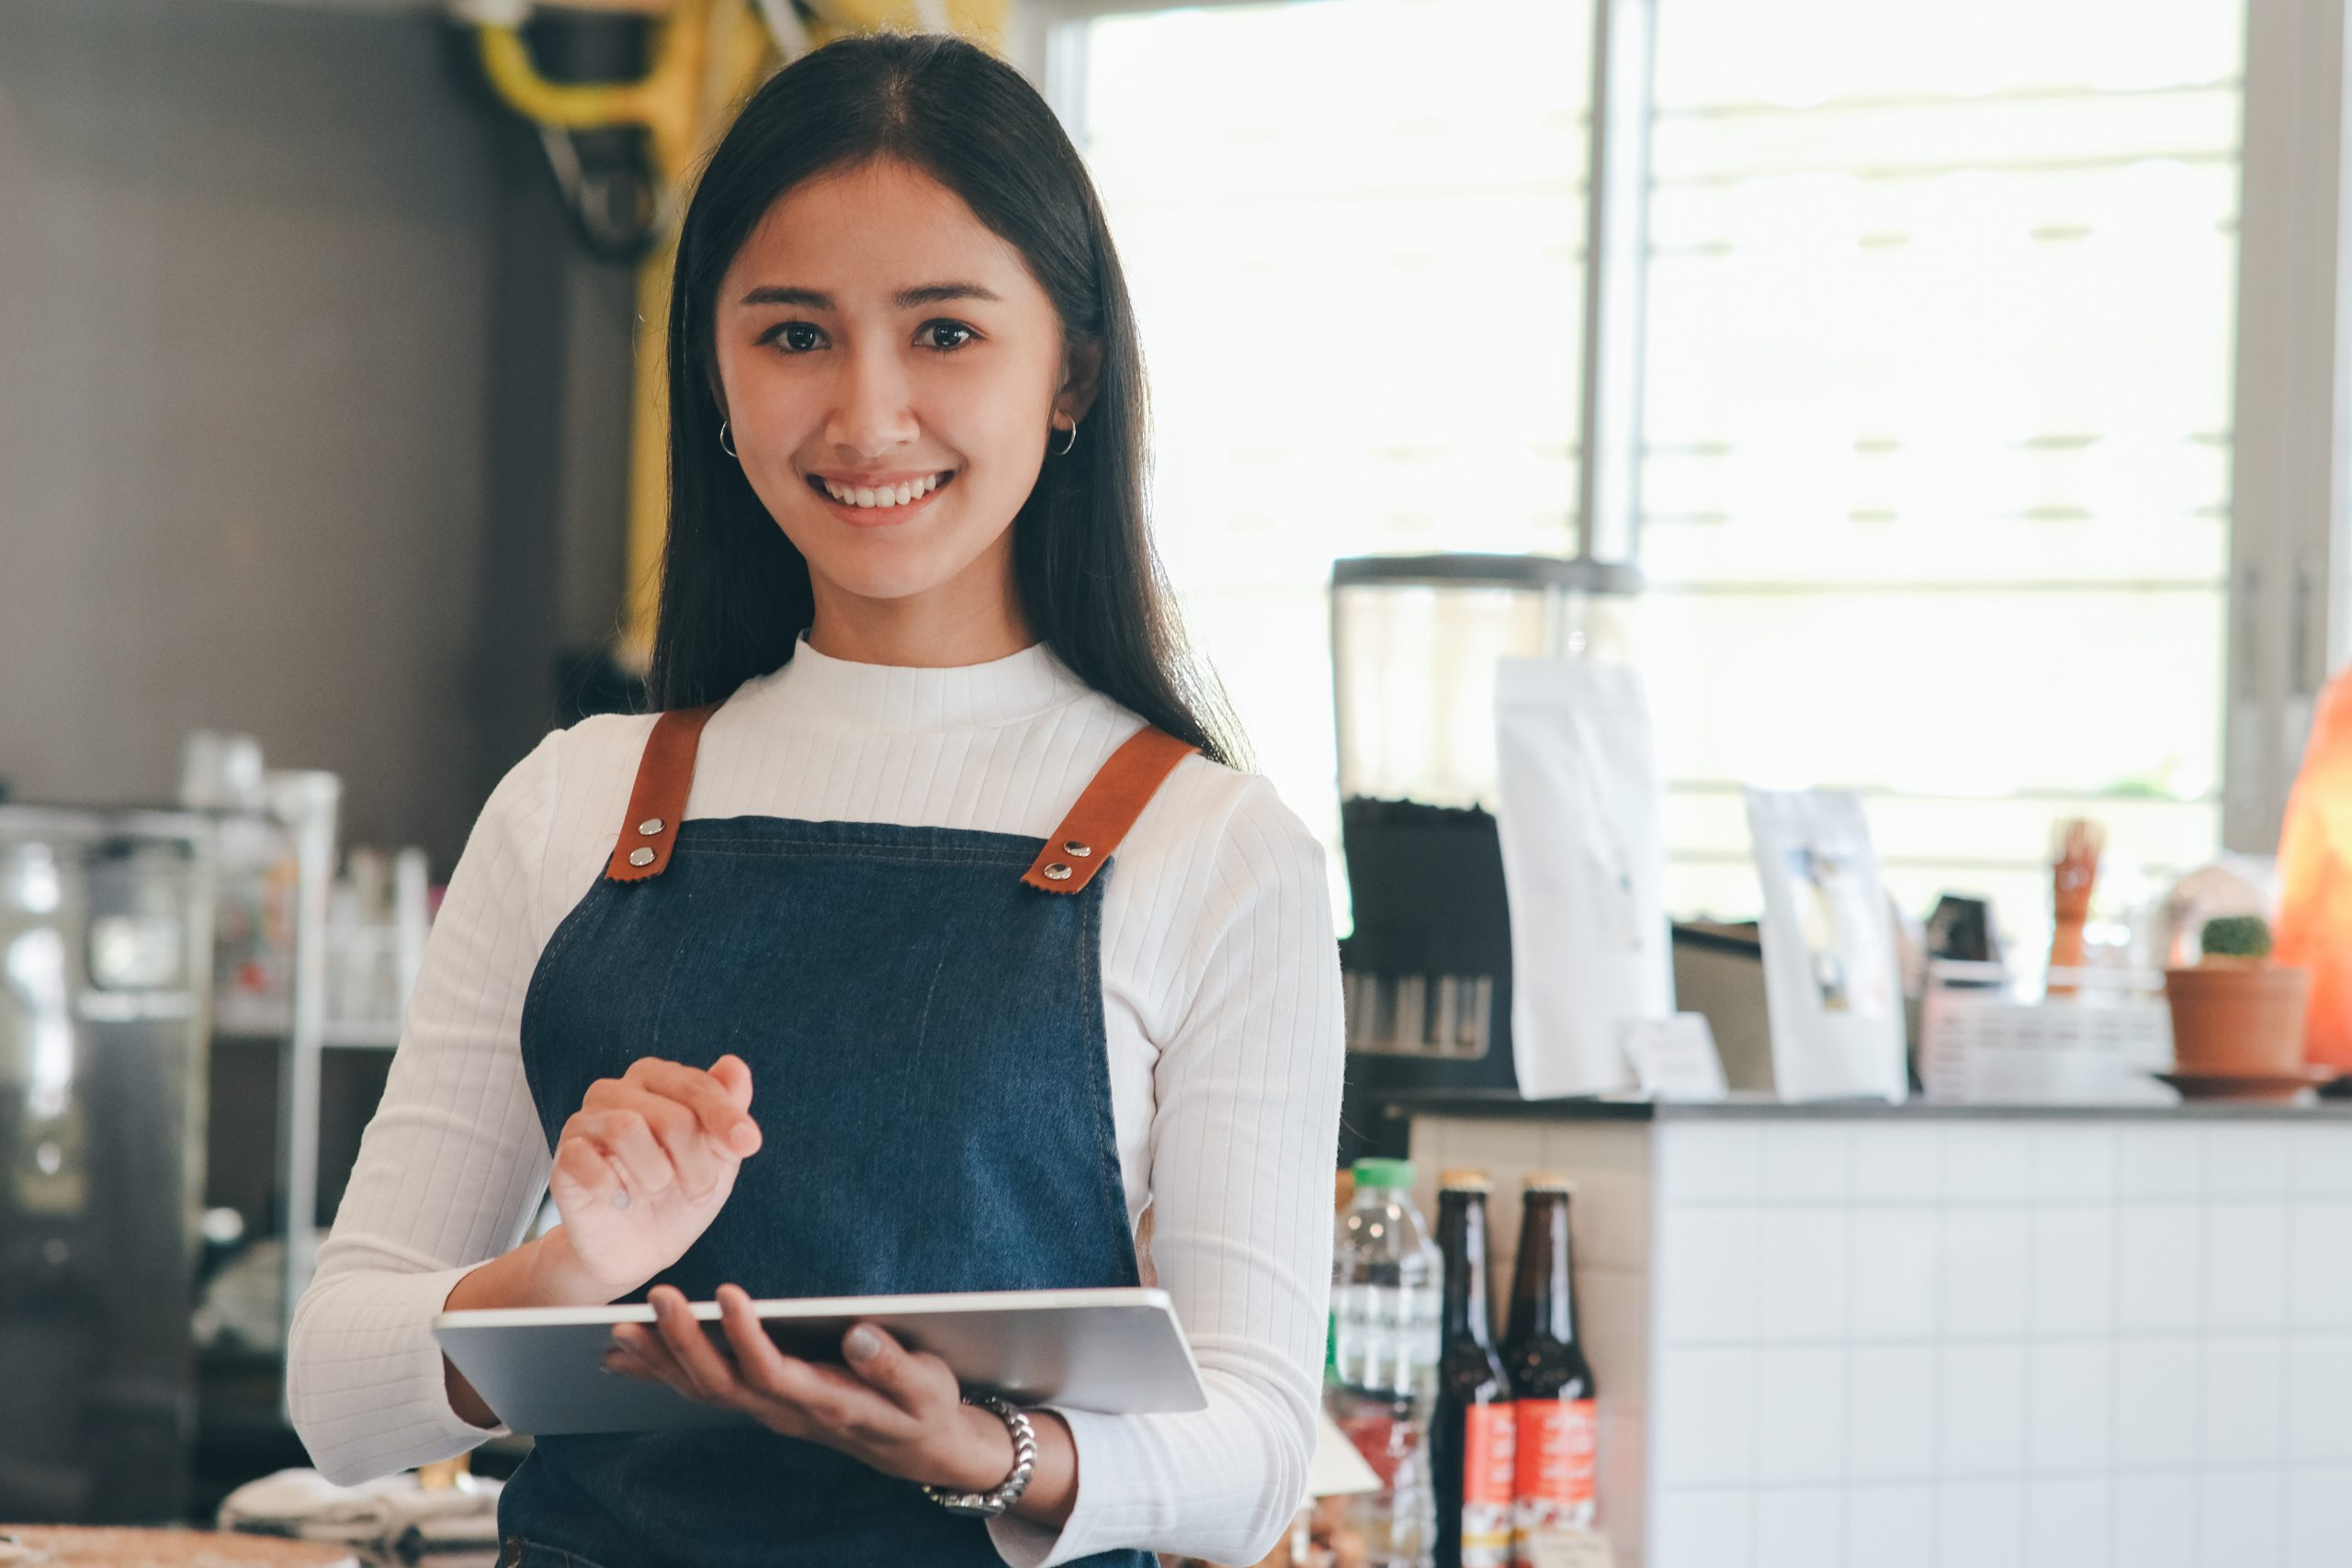 Portrait of woman small business owner using digital tablet and standing in front of counter bar in coffee shop.